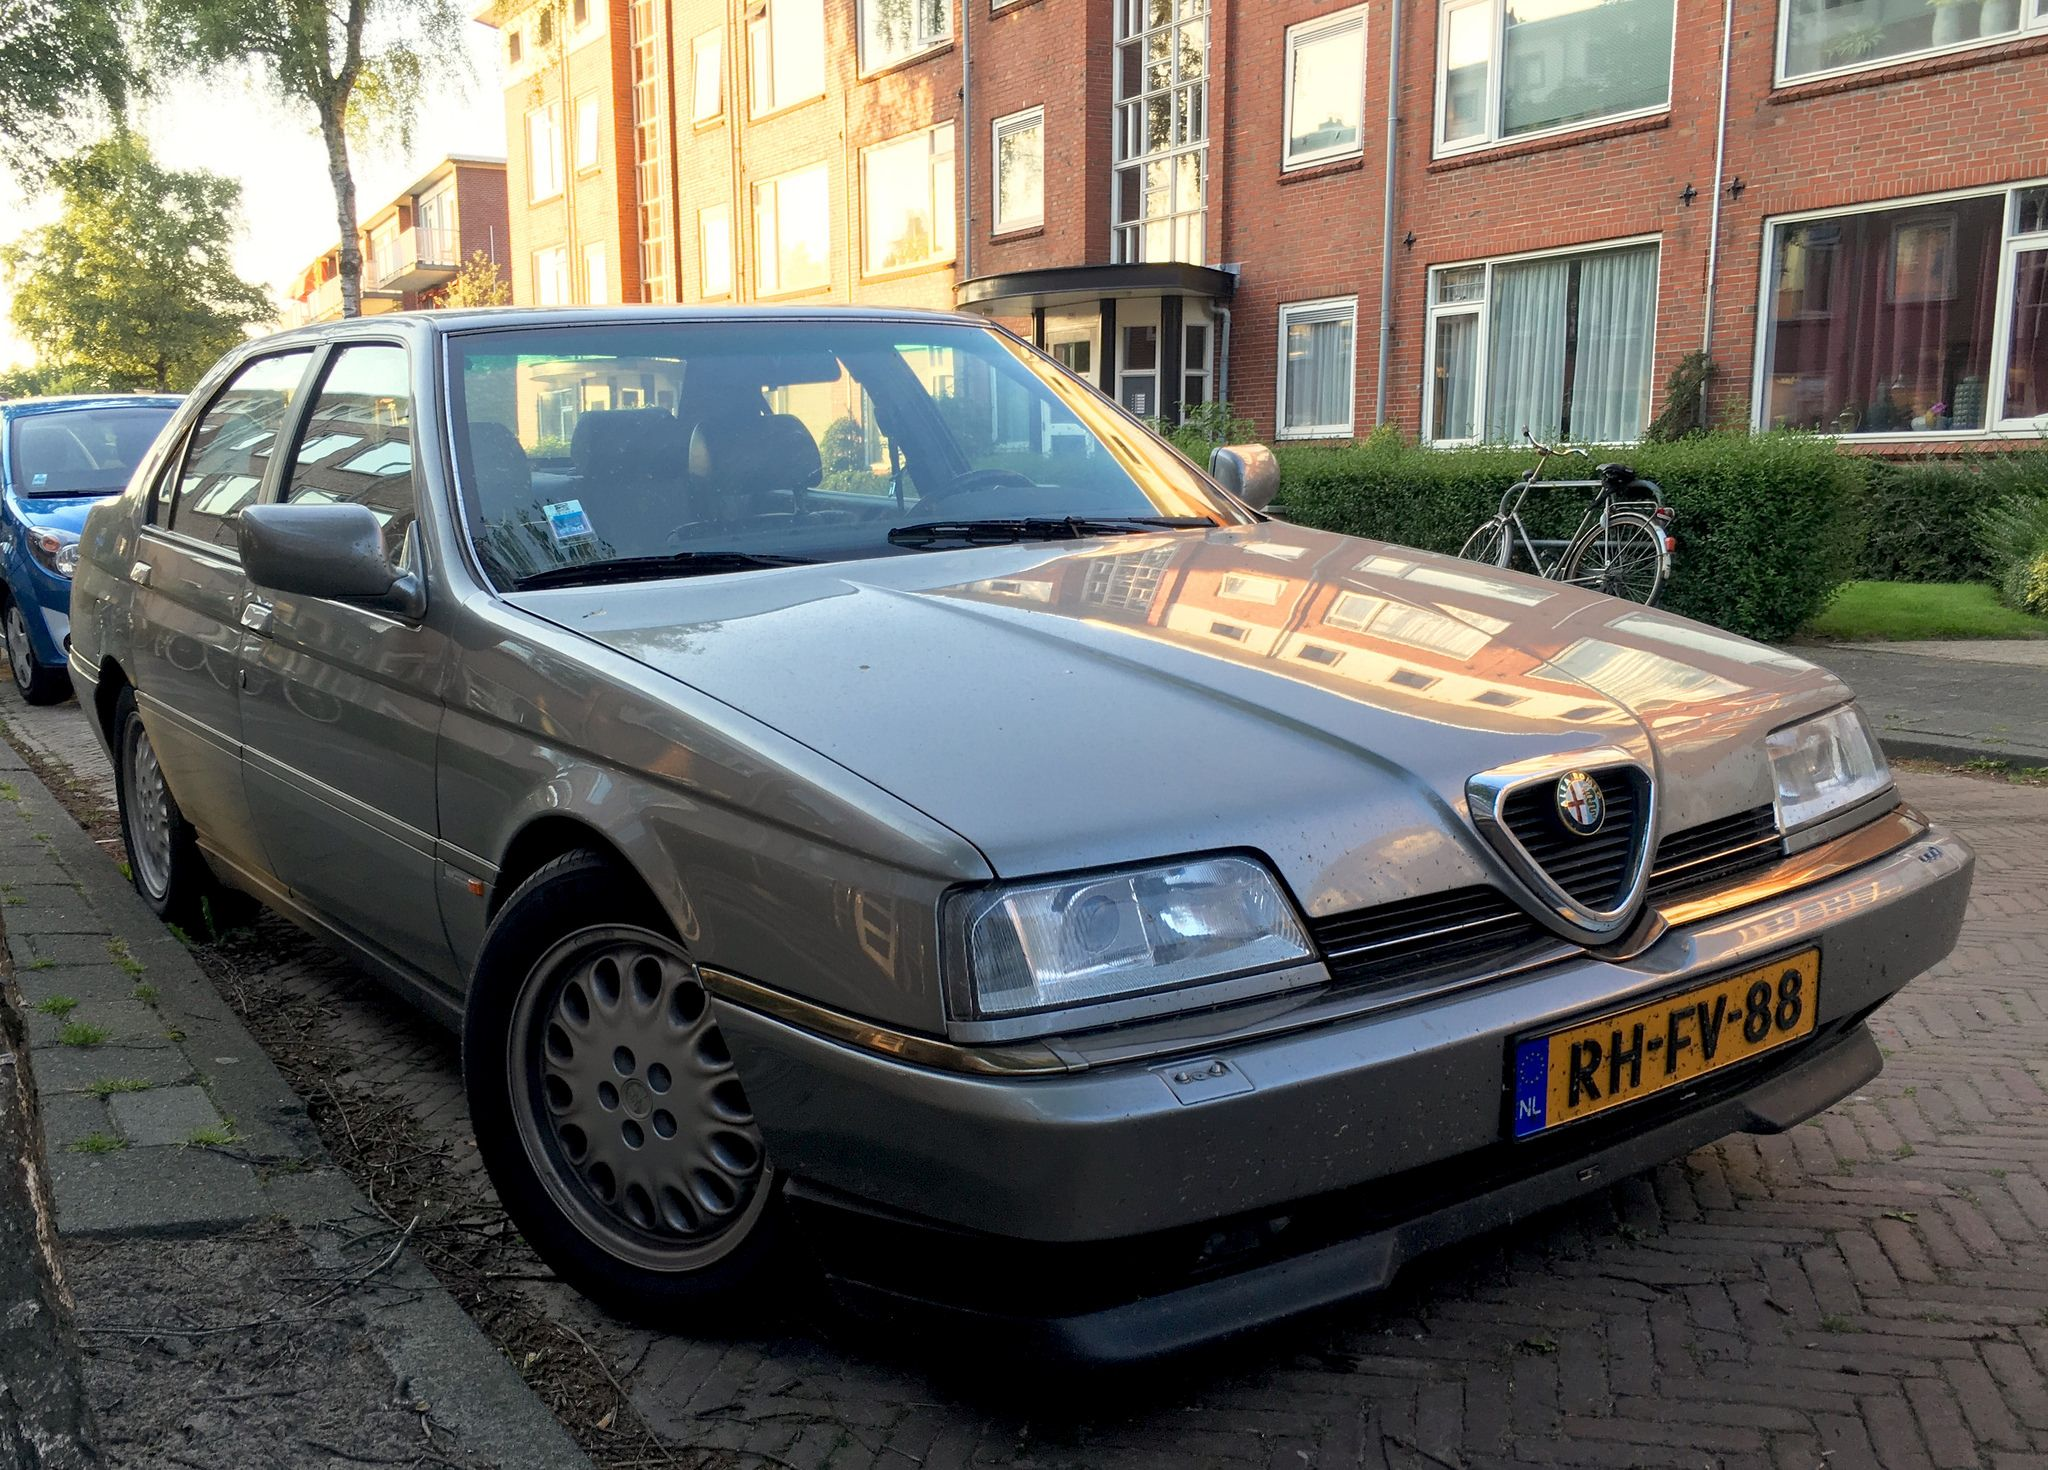 1997 Alfa Romeo 164 Super 2 5 Turbo Diesel